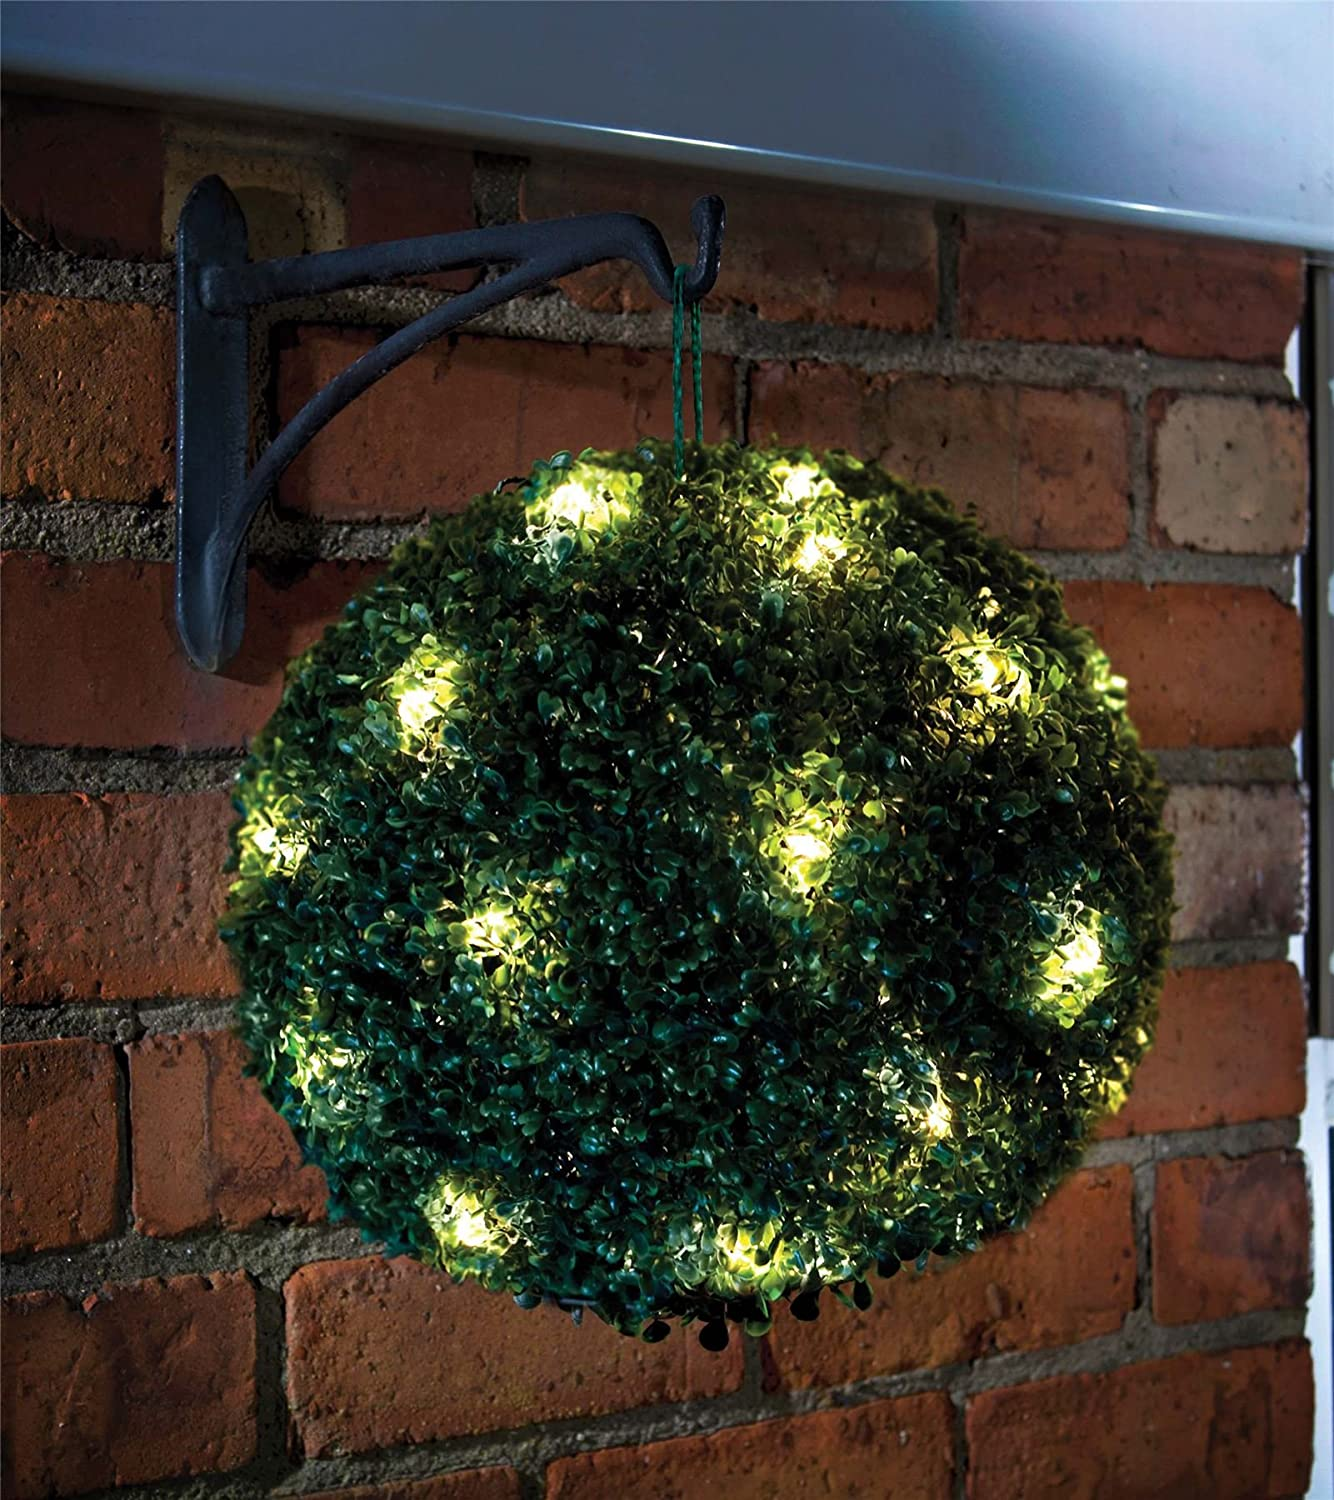 Solar Topiary Ball Sphere / Pagoda / Heart Bush Garden Patio Ornament 20  LED Lights (1 X Hanging Topiary Ball): Amazon.co.uk: Garden U0026 Outdoors